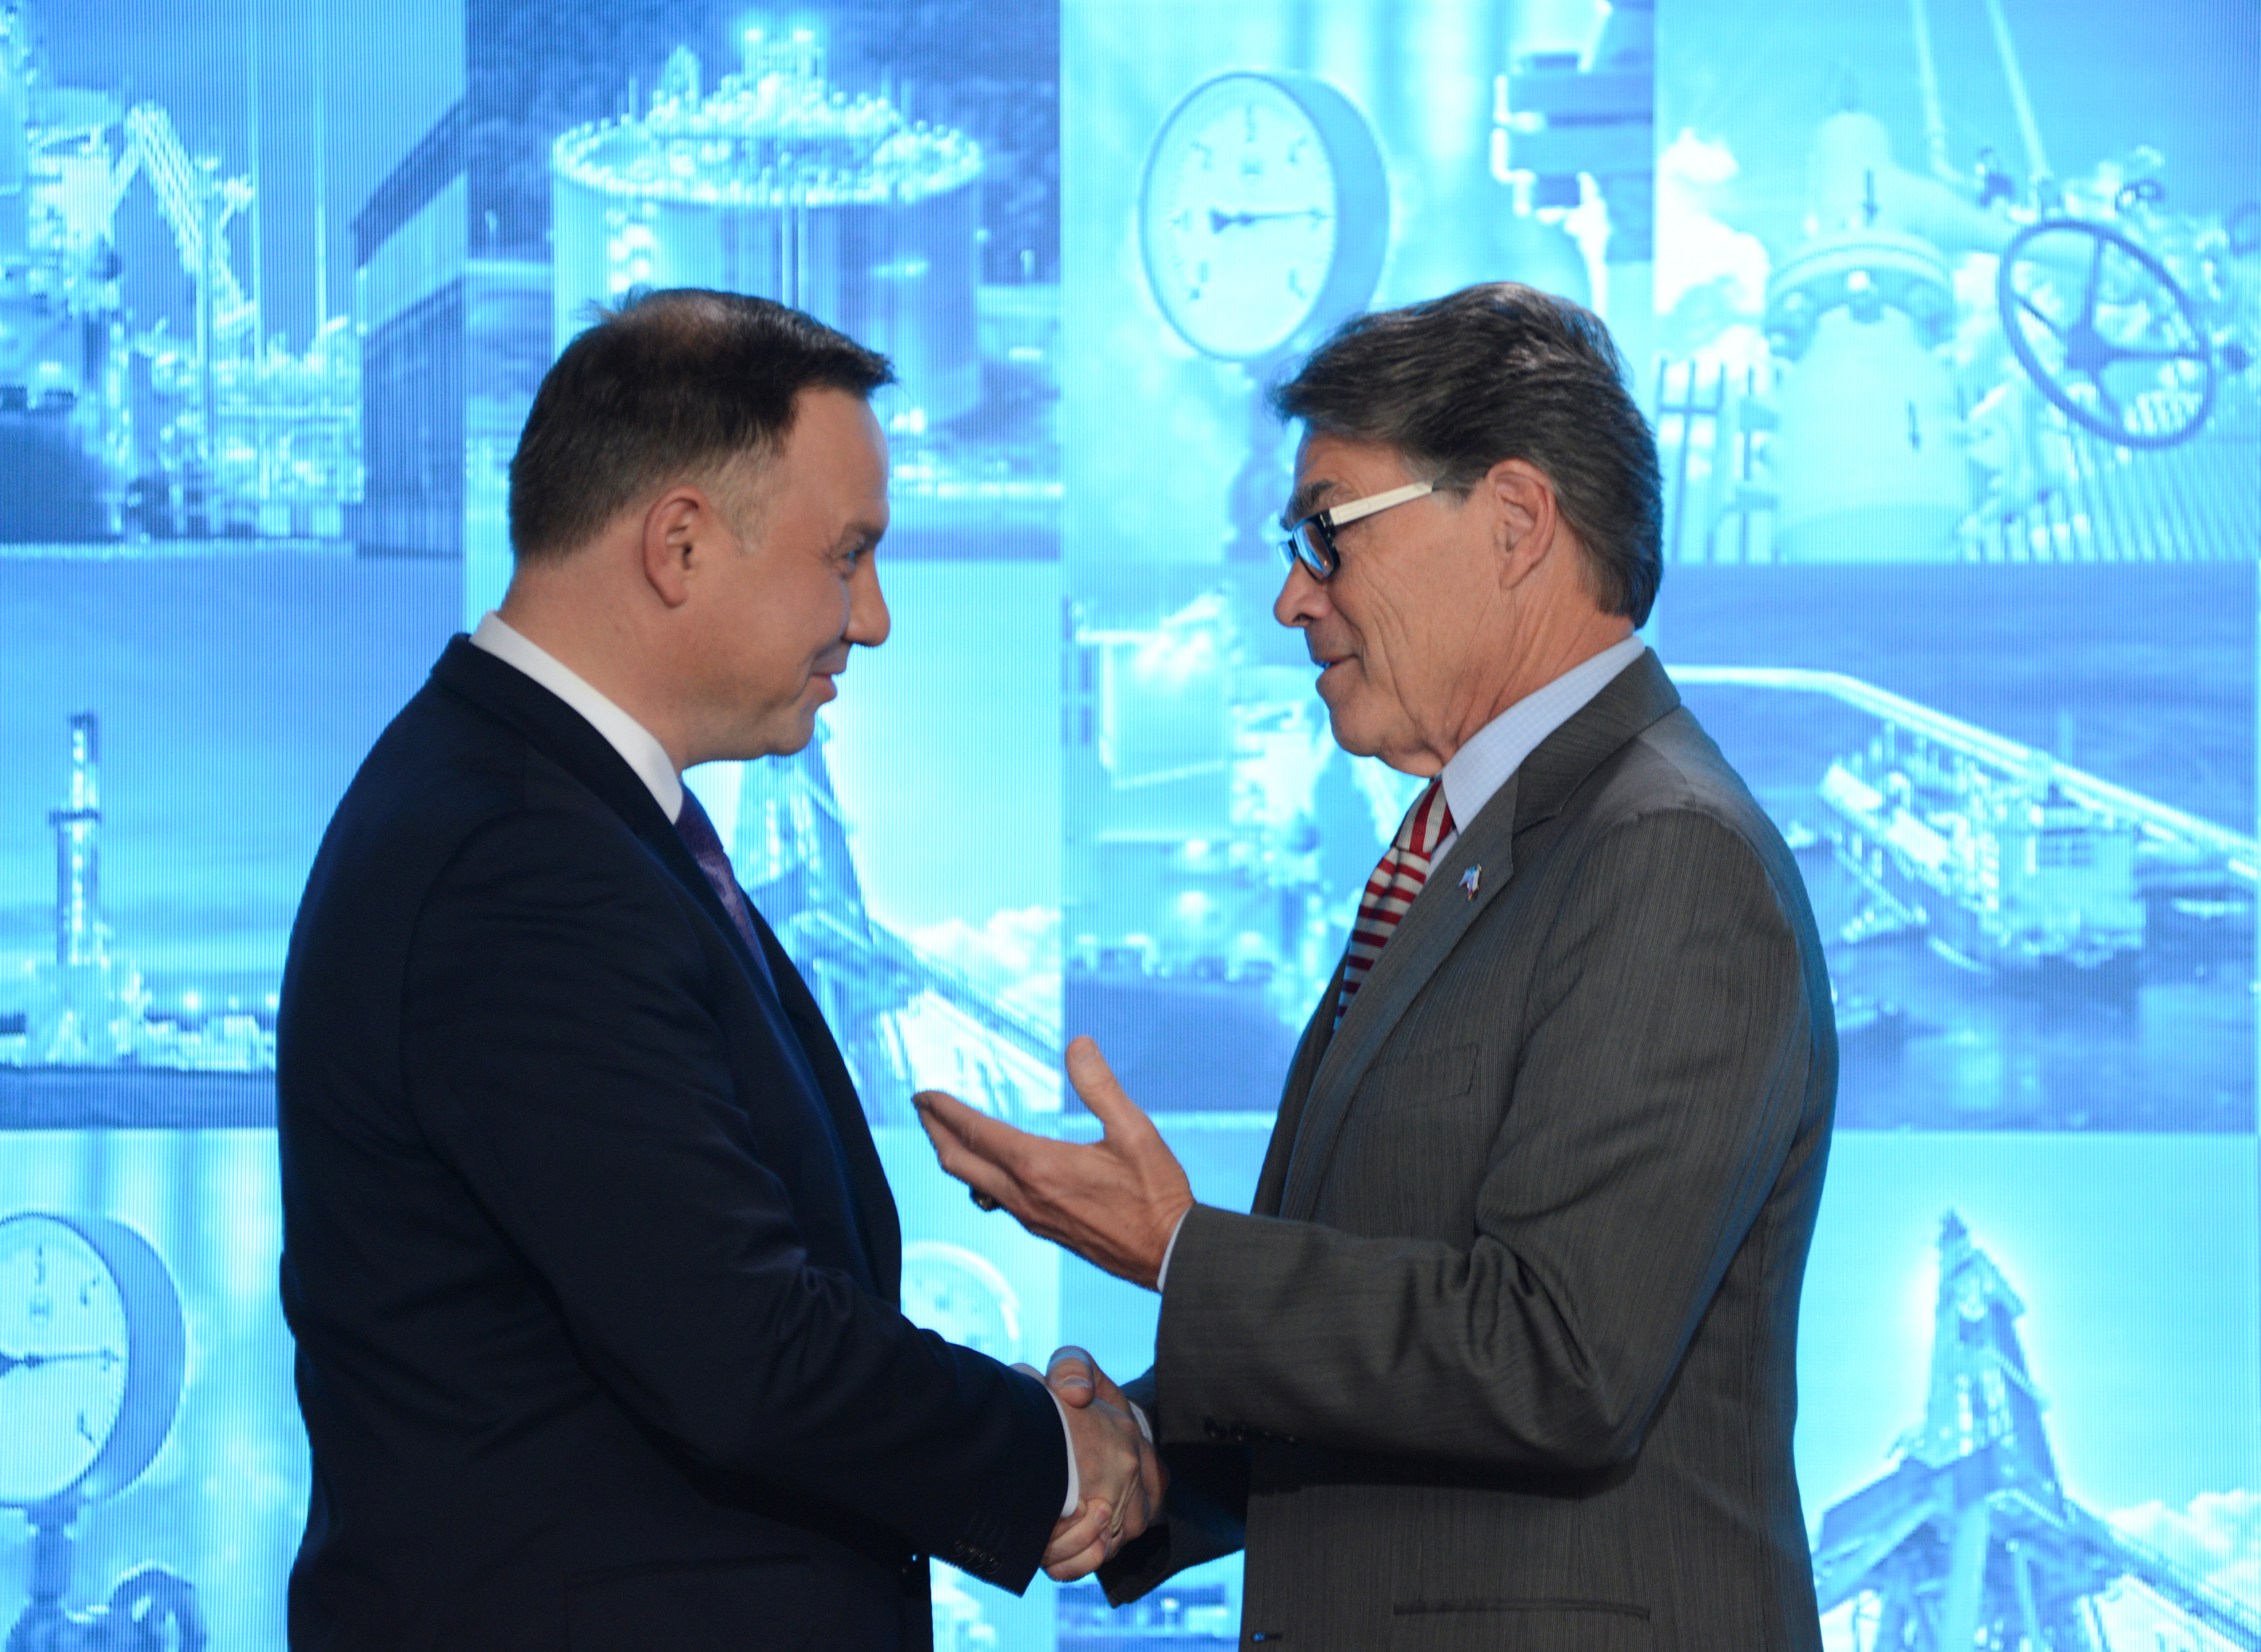 Poland's President Andrzej Duda and U.S. Energy Secretary Rick Perry during joint news conference with Polish gas company PGNiG after signing a contract about LNG supplies in Warsaw, Poland November 8, 2018. Agencja Gazeta/Maciej Jazwiecki/ via REUTERS